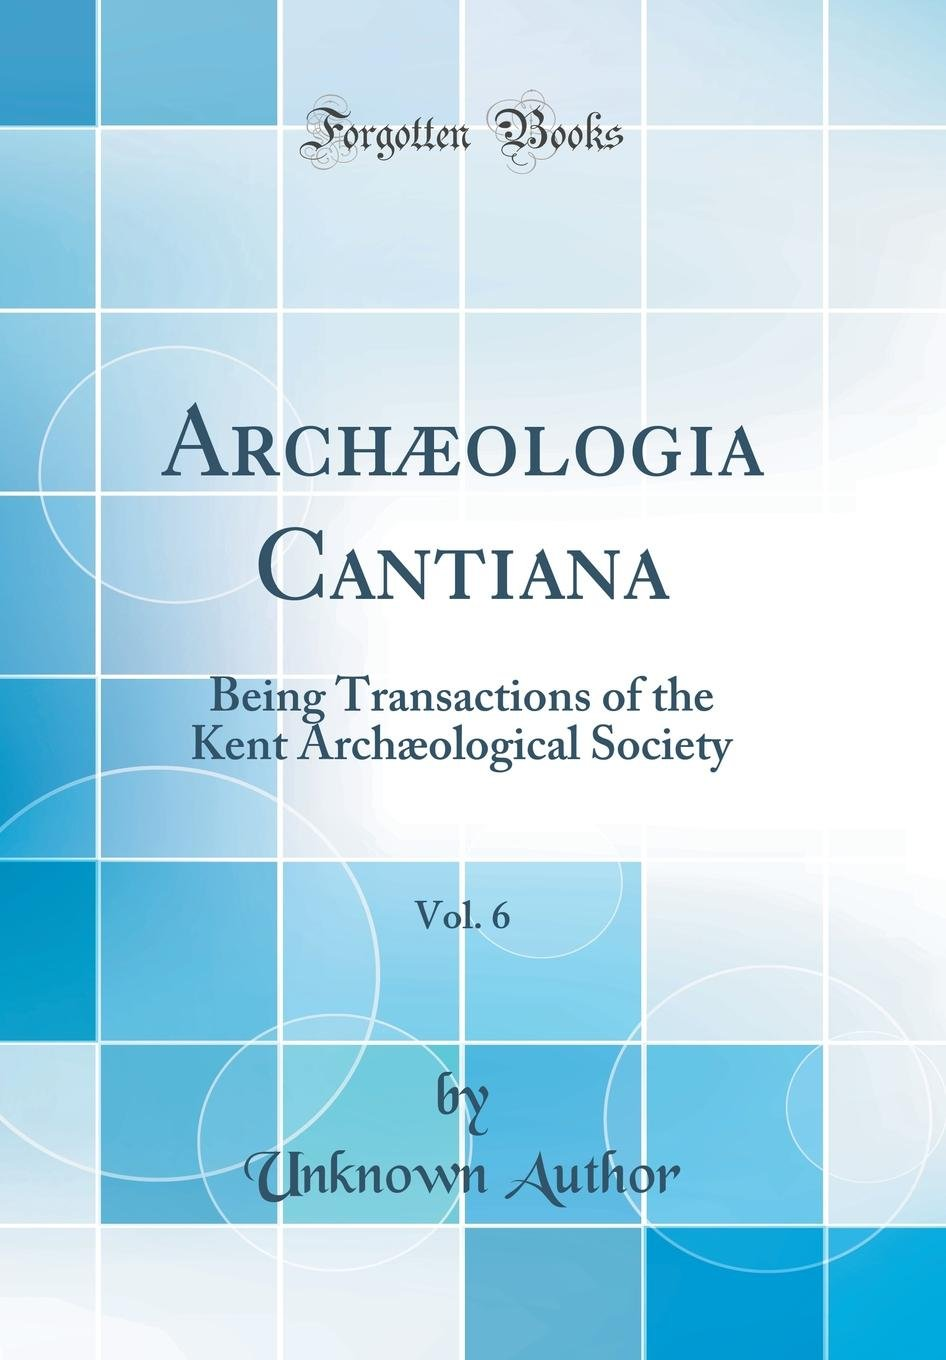 Download Archæologia Cantiana, Vol. 6: Being Transactions of the Kent Archæological Society (Classic Reprint) ebook